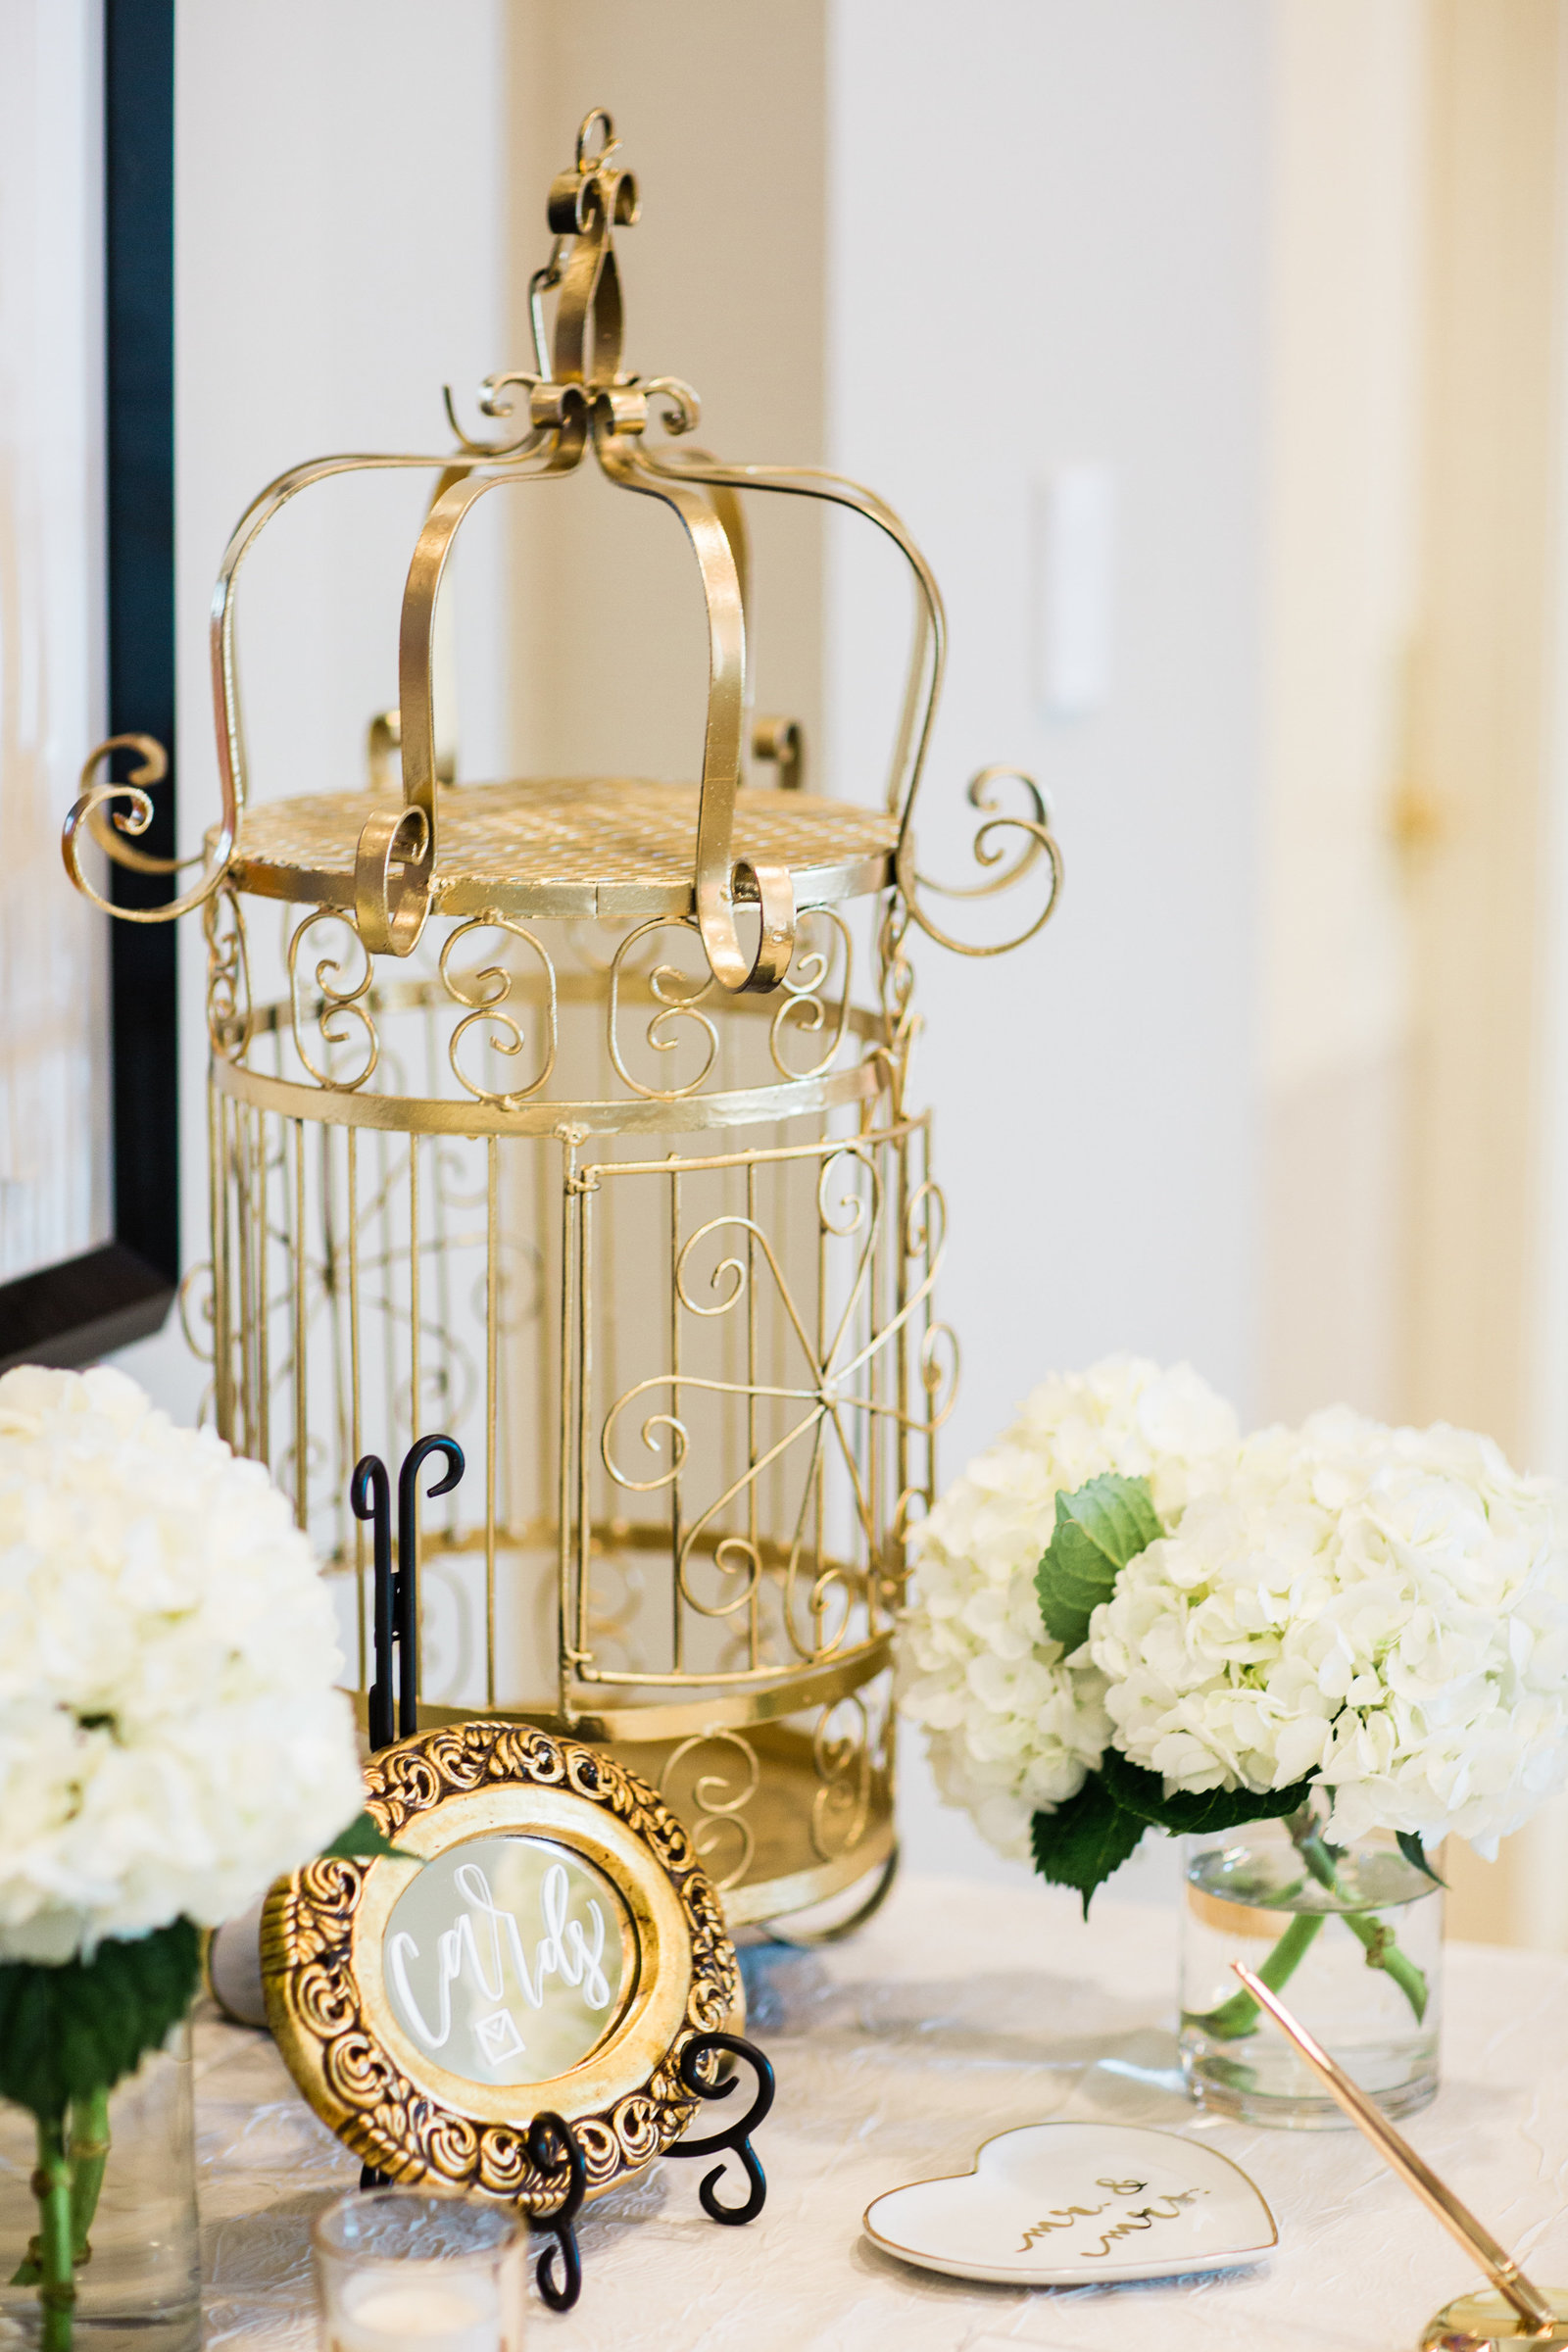 gold birdcage and white blooms accenting escort card table